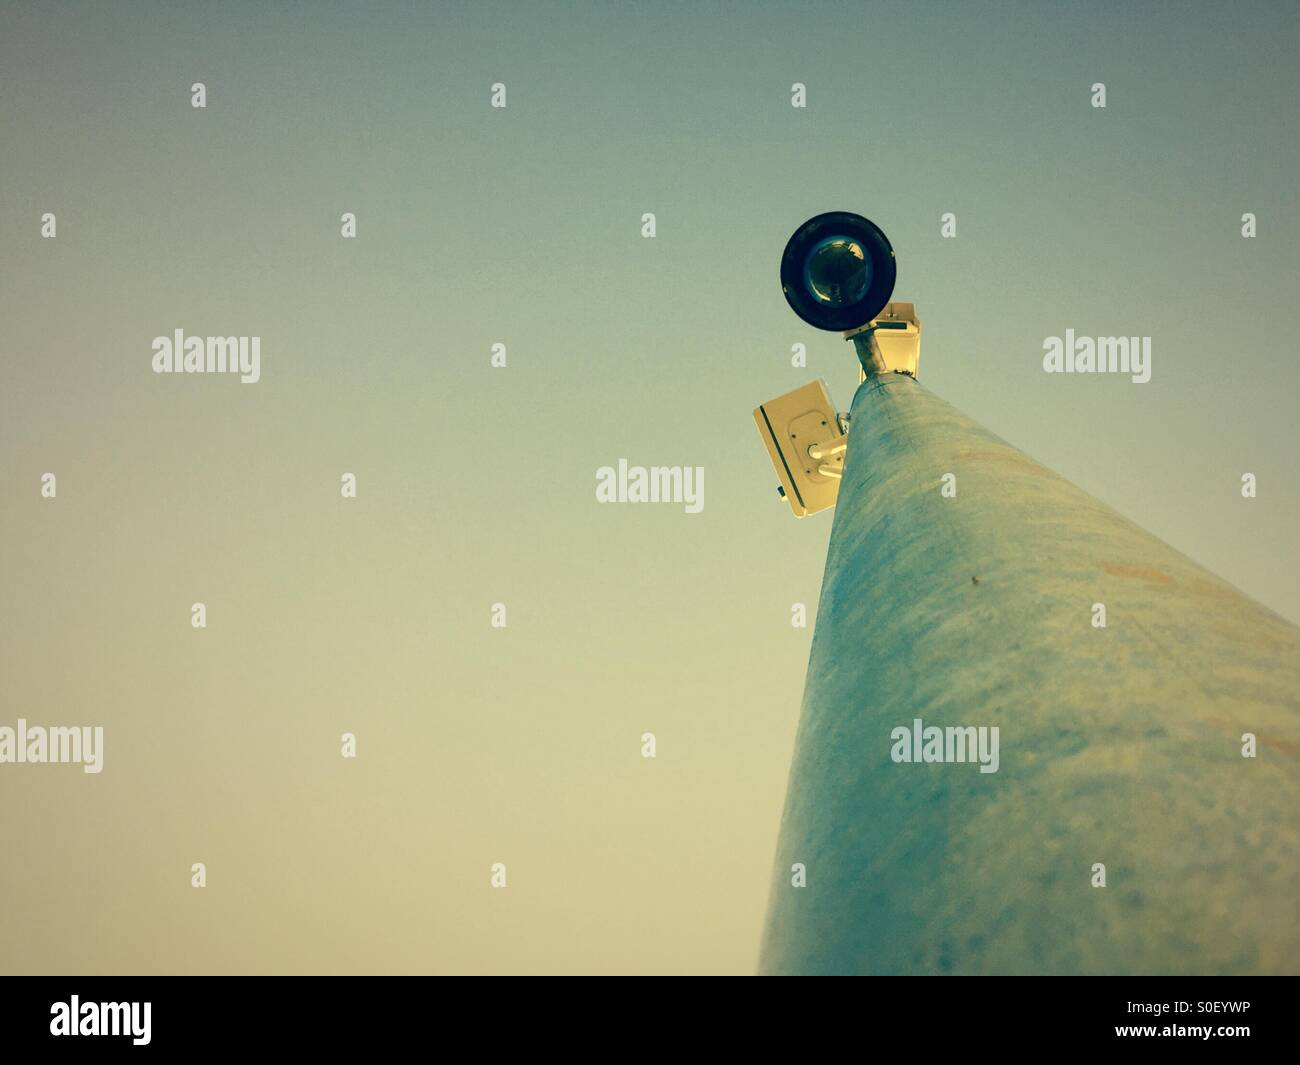 A CCTV camera on a mast watching - Stock Image